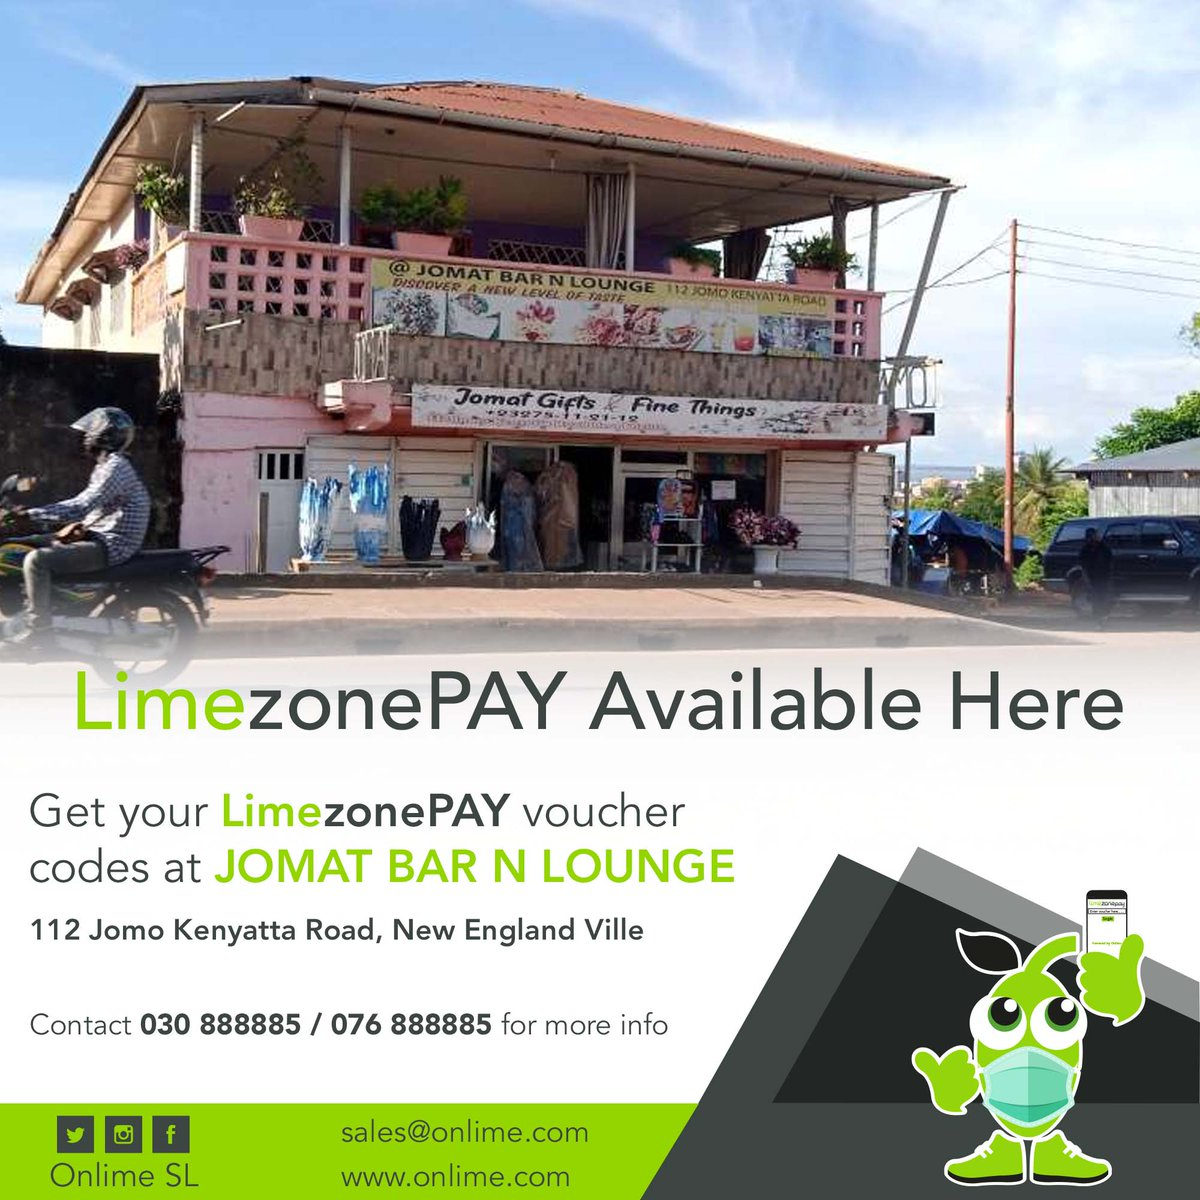 Your LimezonePAY Voucher codes are Available @ Jomat Bar N Lounge, 112 Jomo Kenyatta Road. contact +23230888885/+23276888885 for more info. #StayConnected #StaySafe #LimezonePAY #SuperfastInternet #ABundleOfCheapData https://t.co/1BNTx8V5Cc